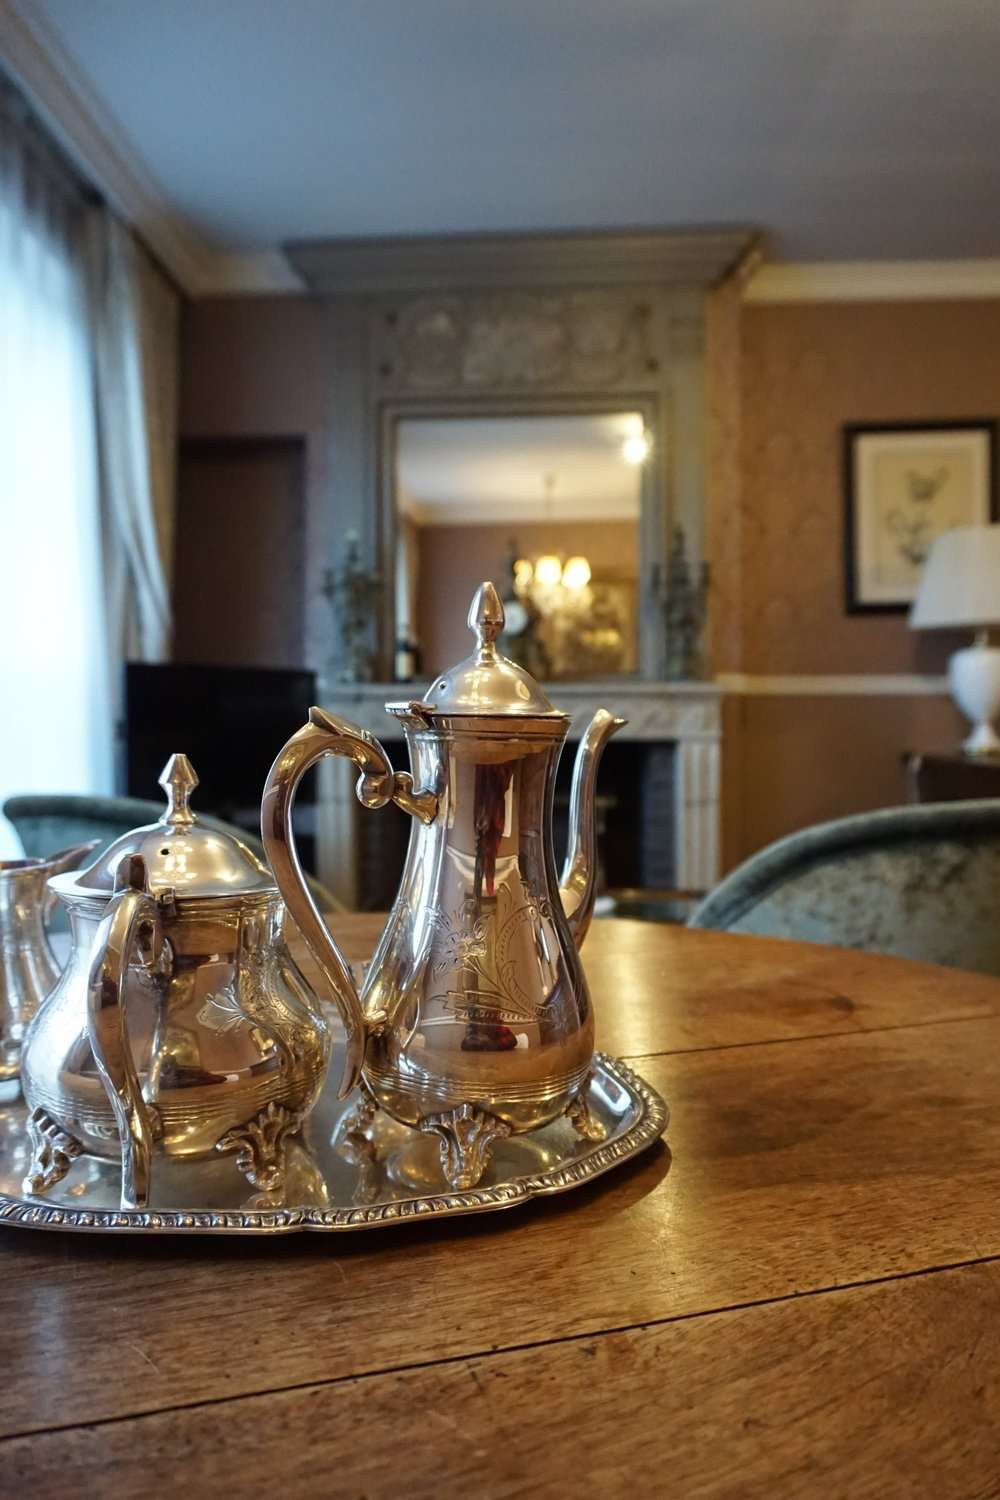 Classical tea set at Hotel Die Swaene in Bruges